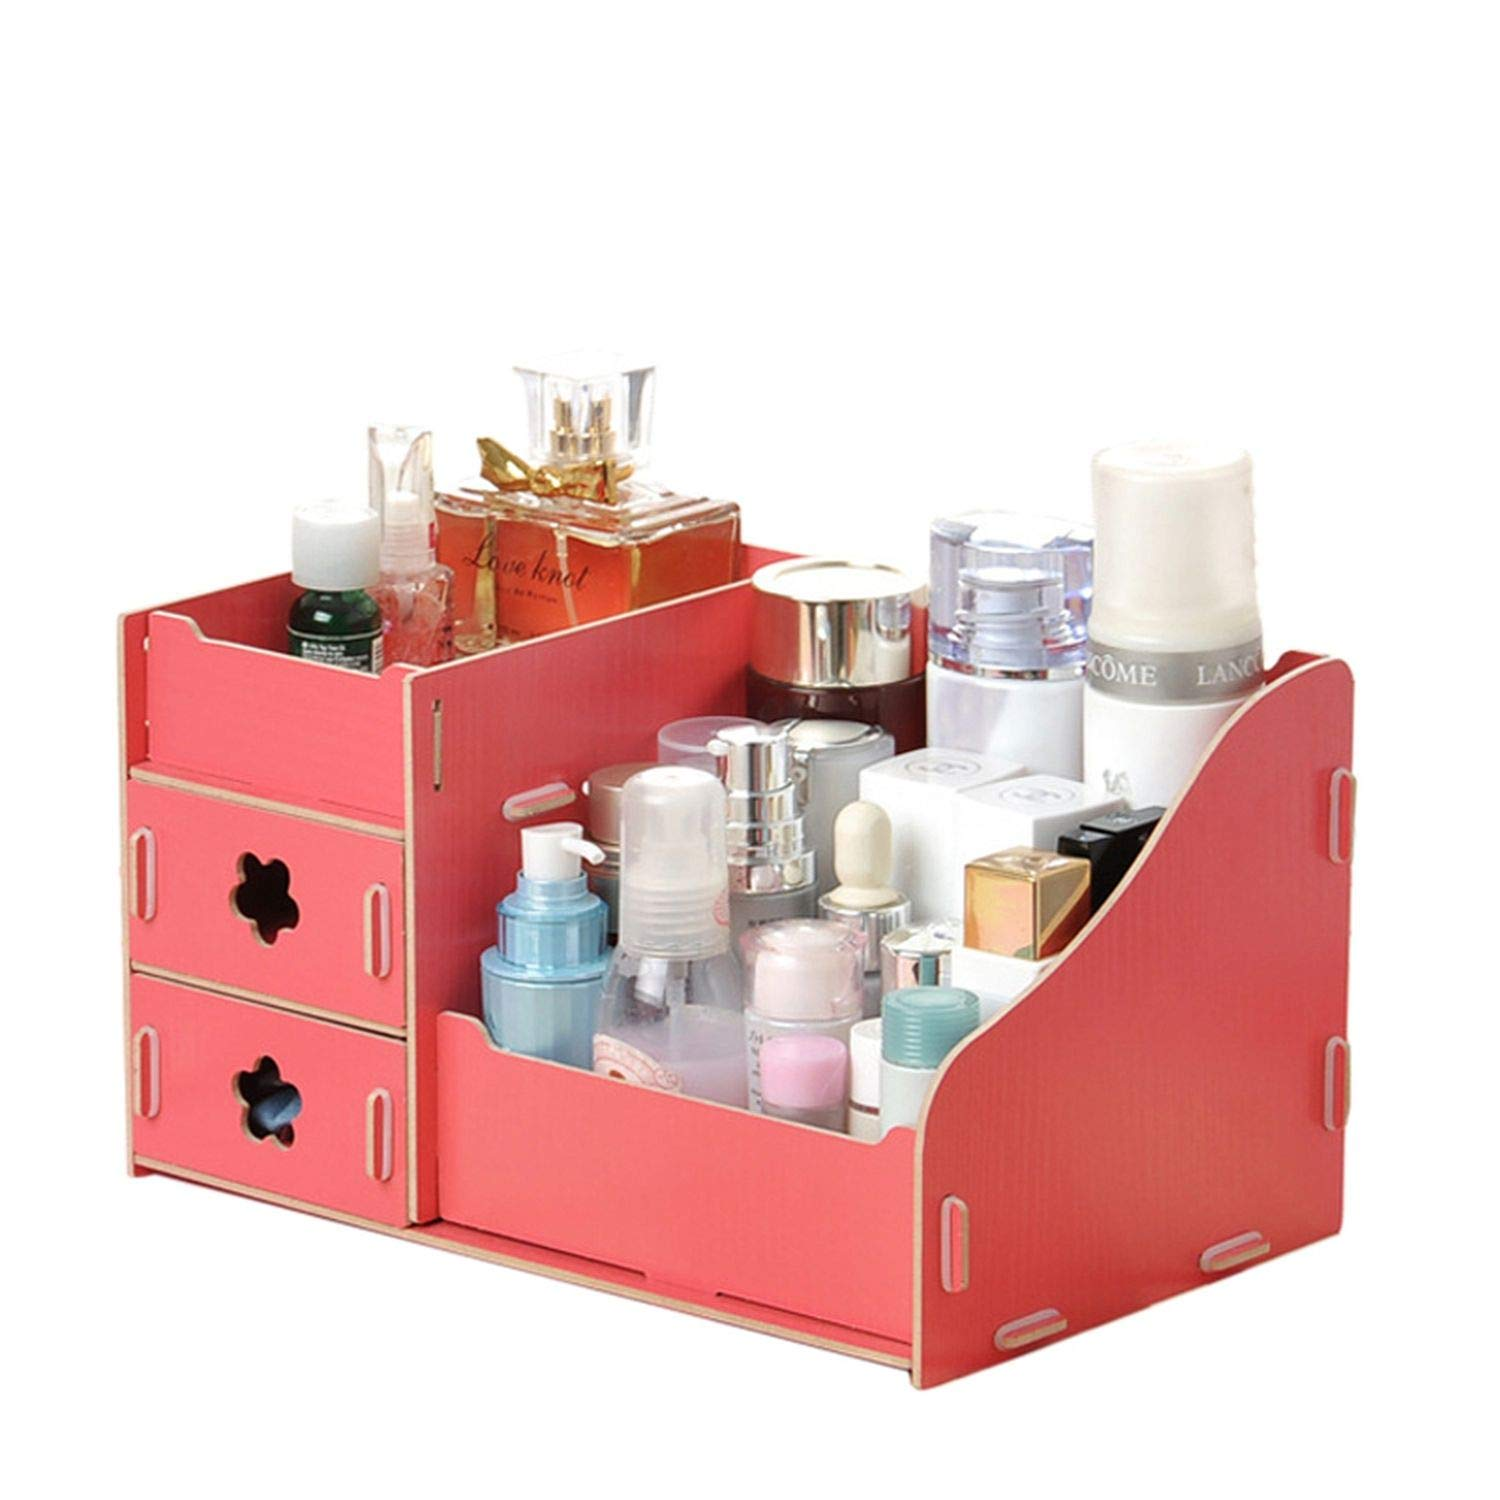 Collocation-Online Wooden Cosmetic Storage Boxes Small Drawer Jewelry Box Desktop Sundries Handmade DIY Makeup,Flower A by Collocation-Online (Image #4)